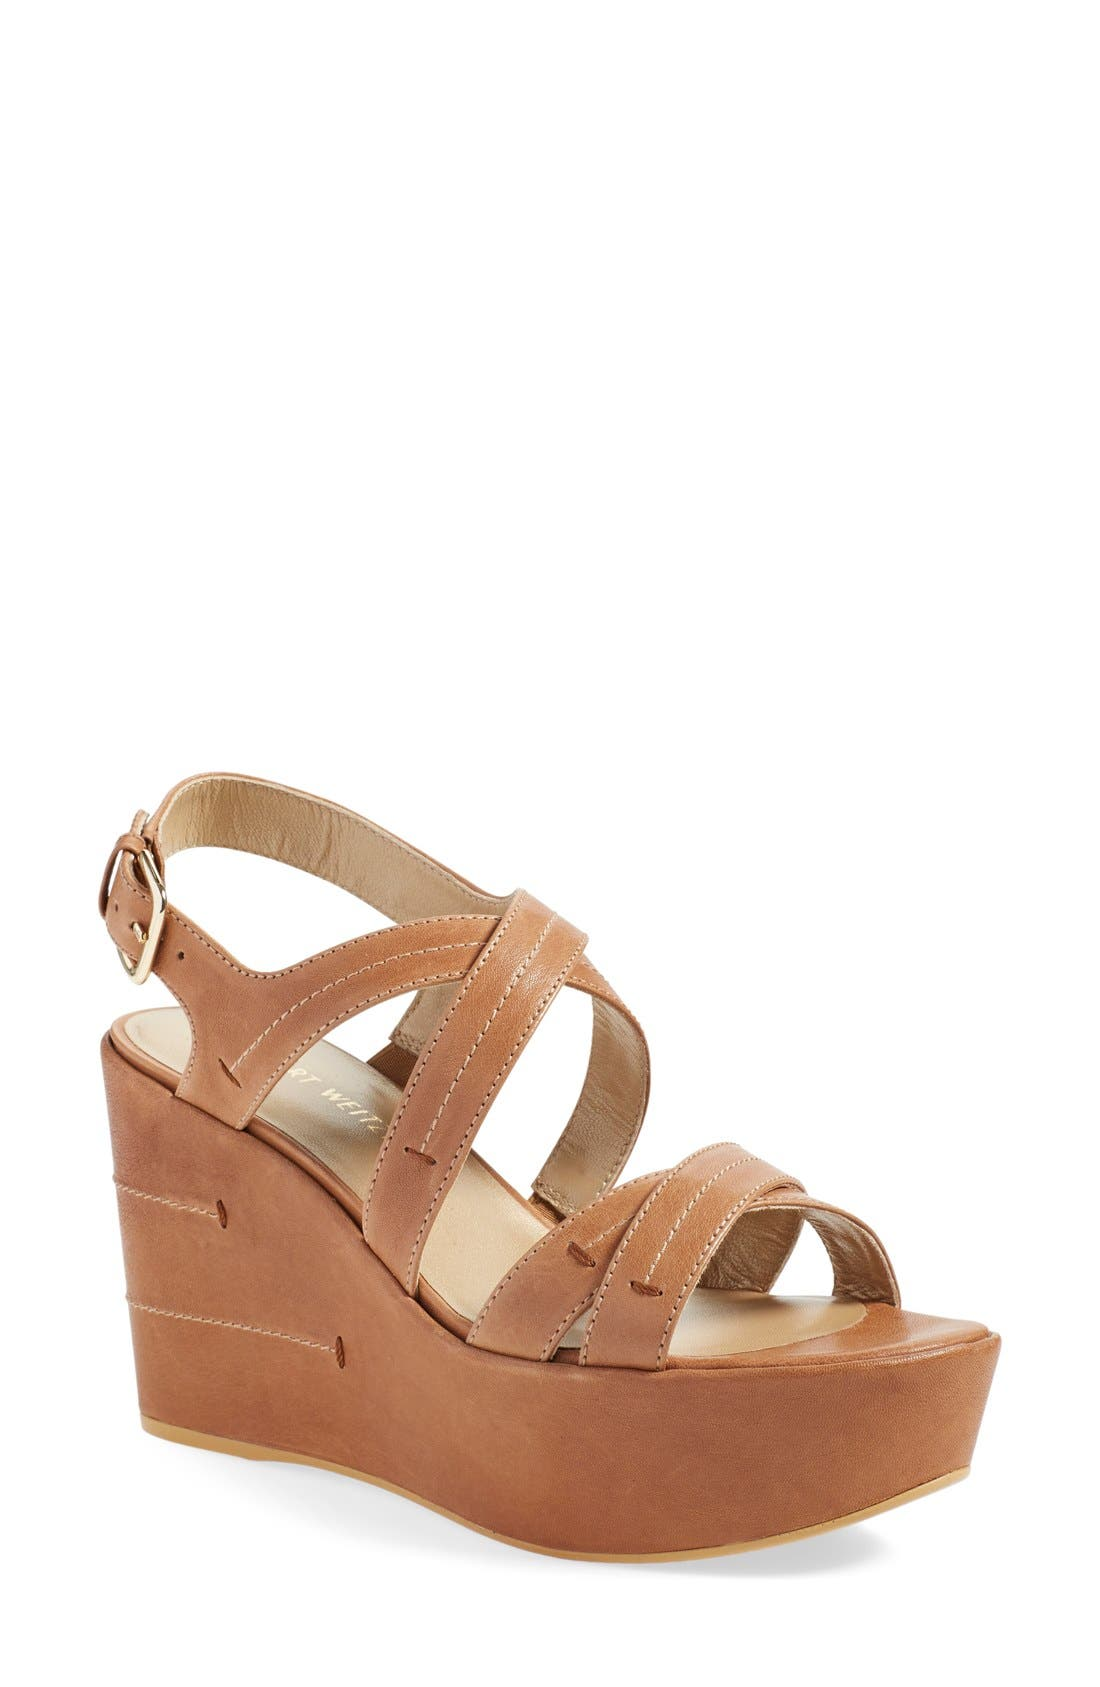 Main Image - Stuart Weitzman 'Doublexing' Wedge Sandal (Women)